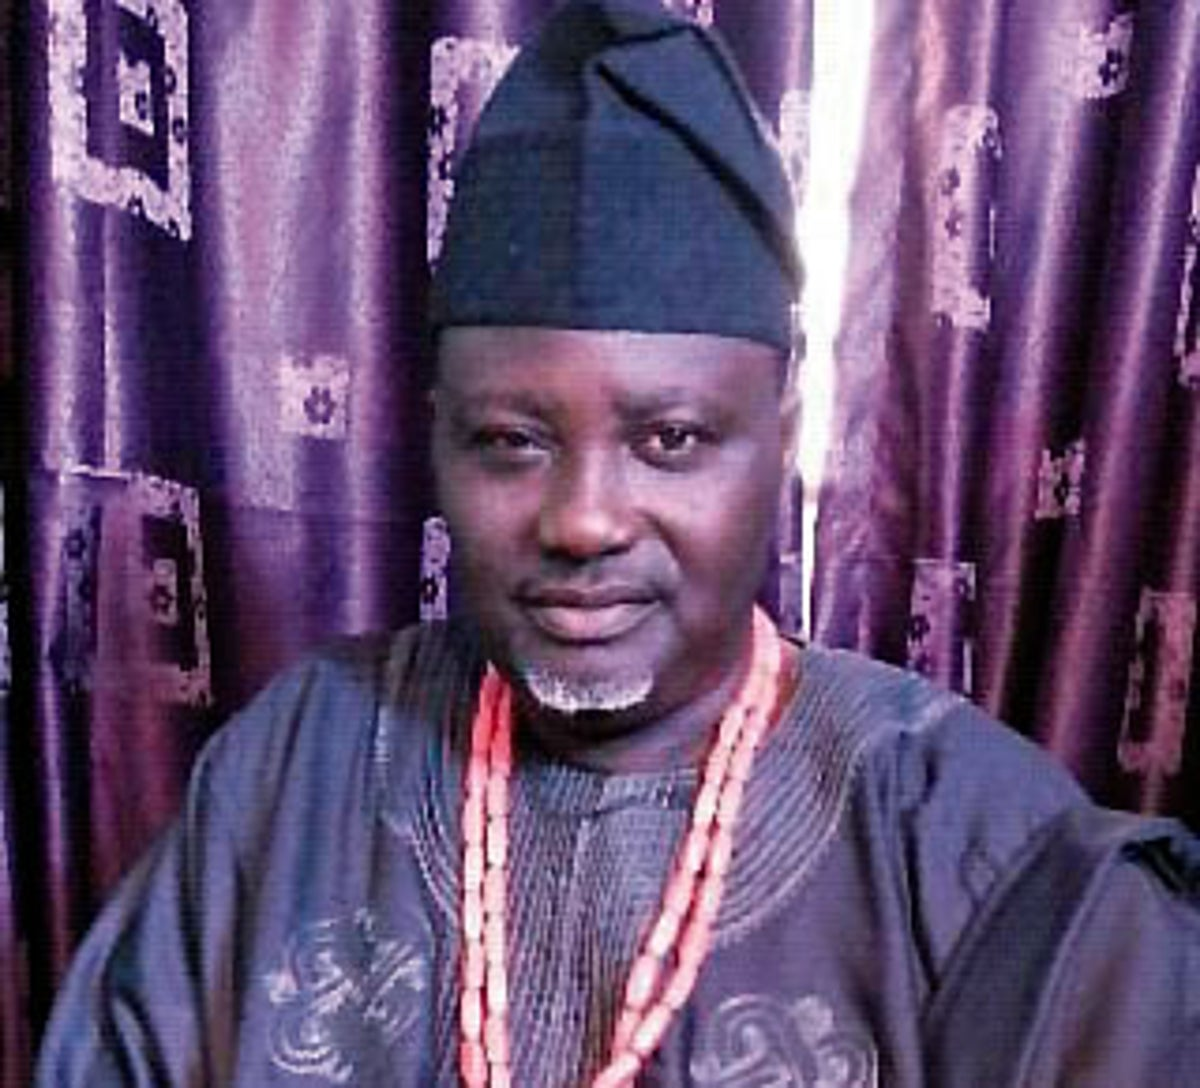 Veteran Yoruba Actor, Antar Laniyan Celebrates Birthday Today, Drop Your Wishes For Him